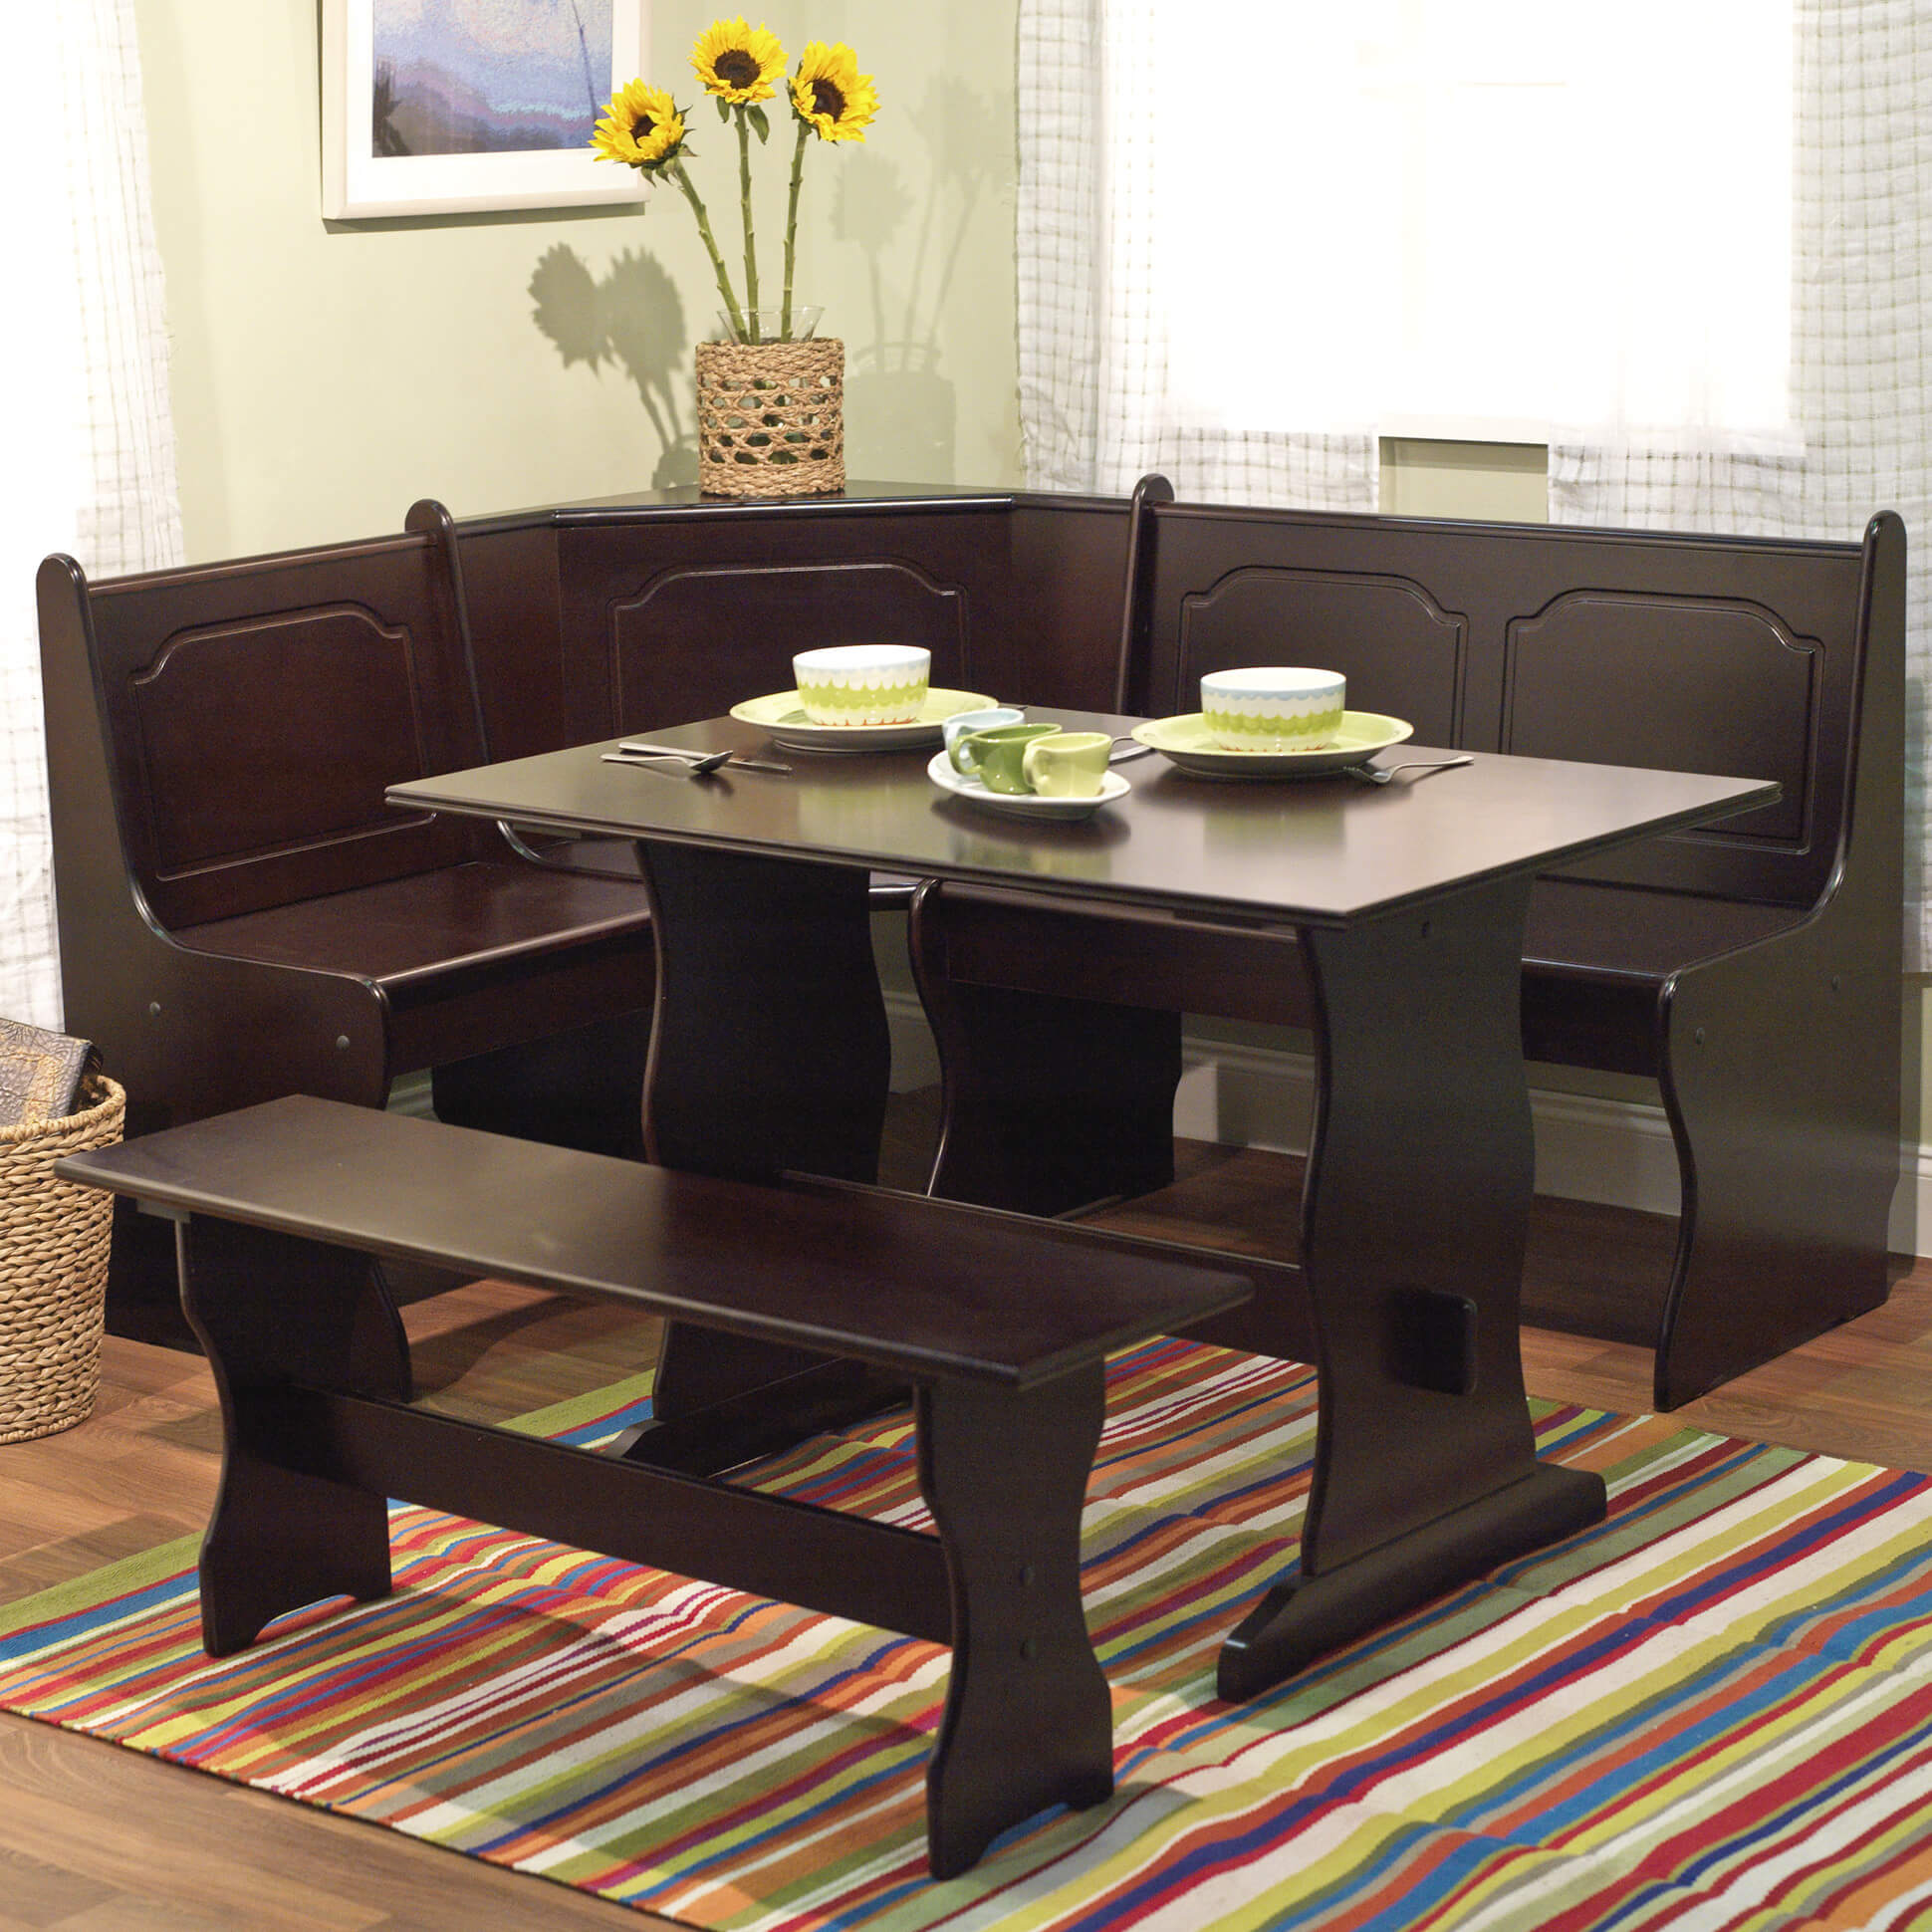 Dining Room Table With Corner Bench 23 Space Saving Corner